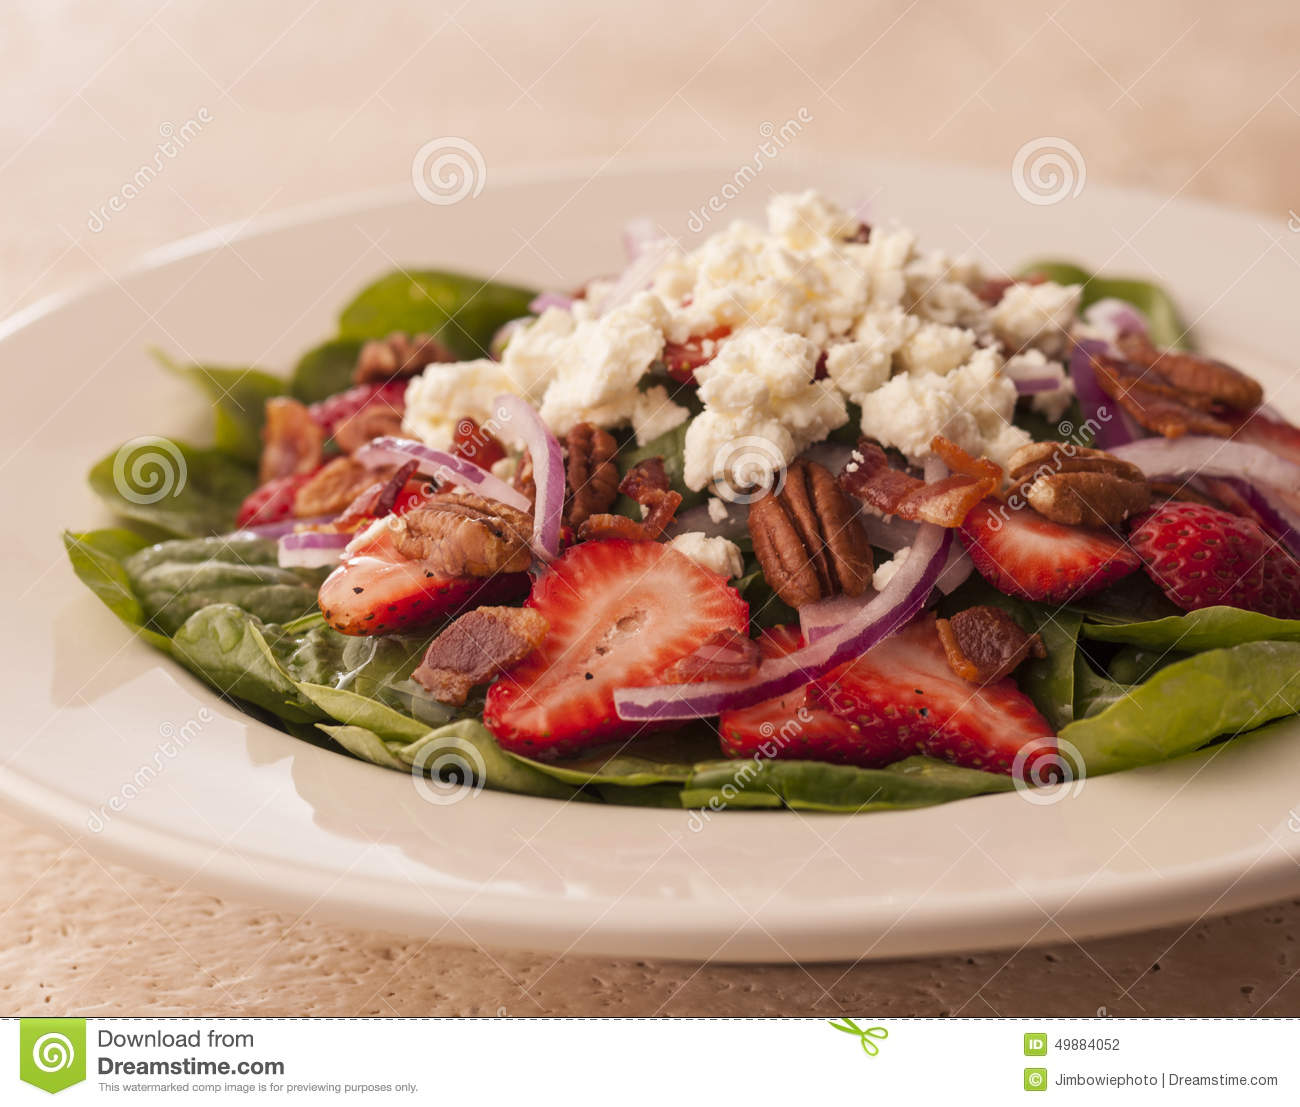 Spinach Salad With Strawberries And Goat Cheese Stock Photo - Image ...